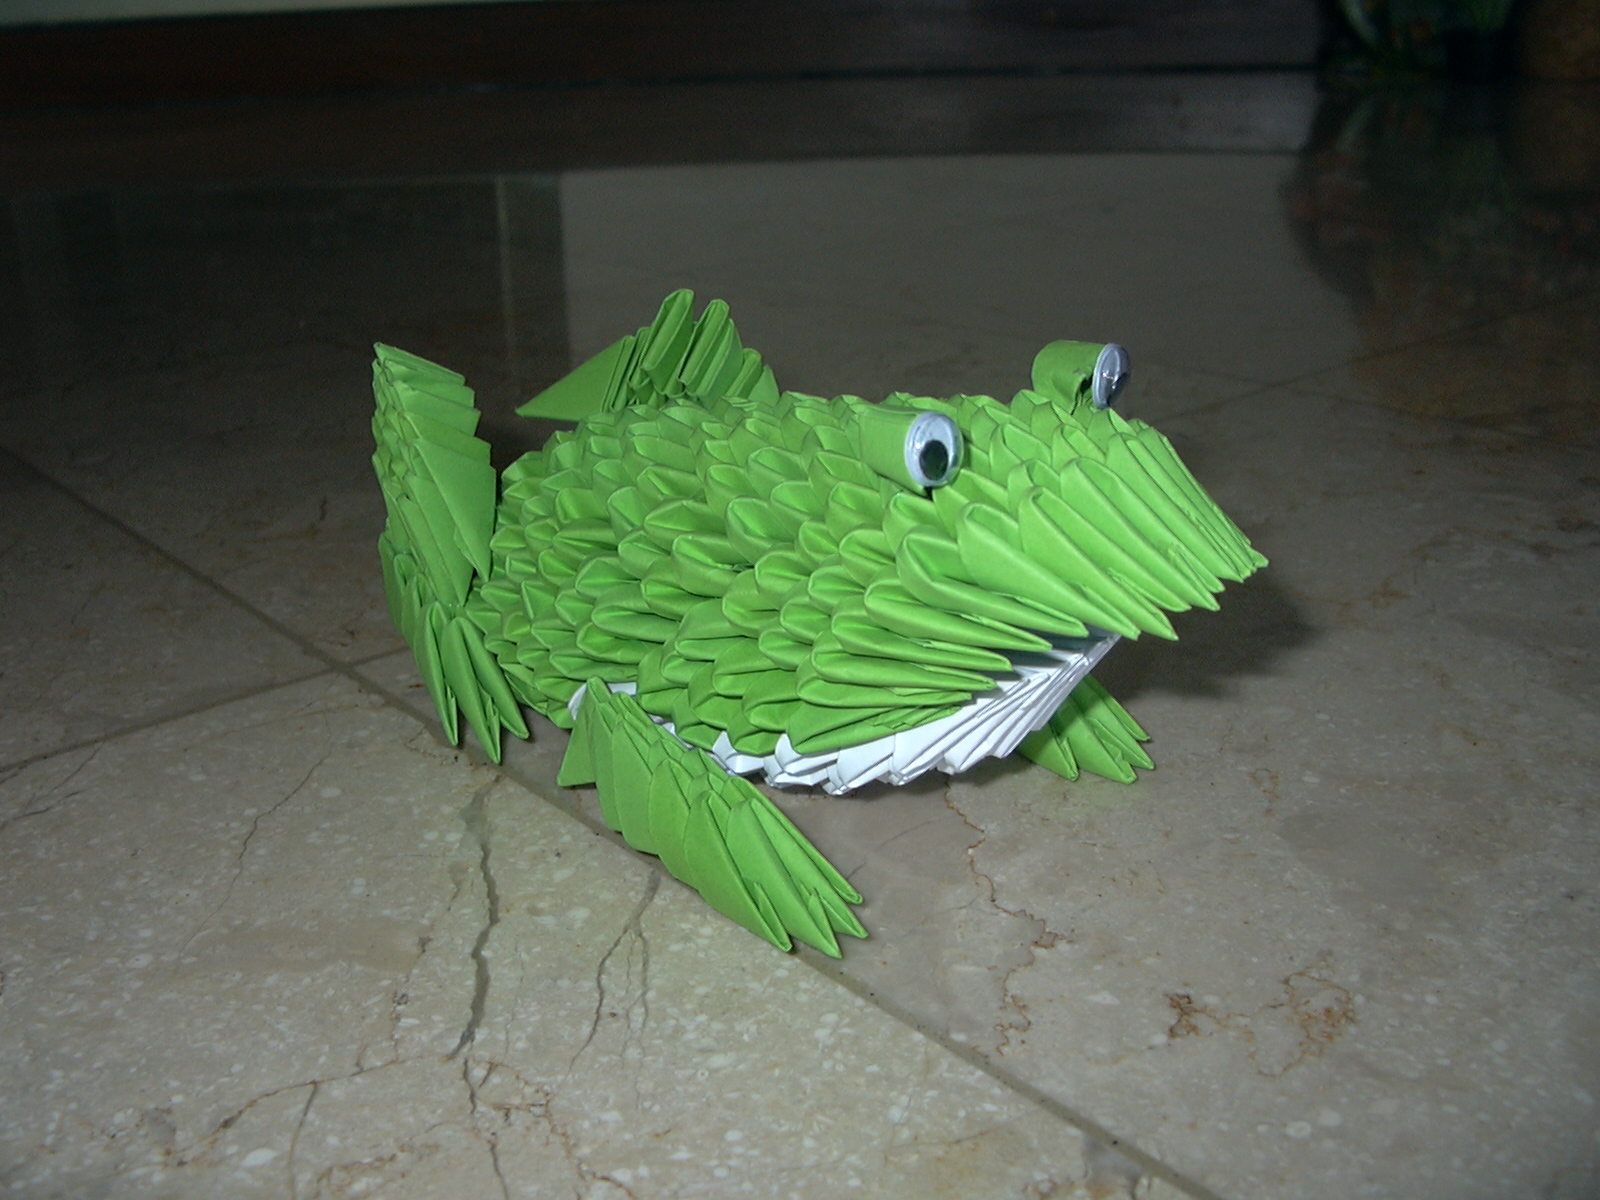 ICHANOKO 3D ORIGAMI INDONESIA: Model 3d origami - ANIMALS - photo#8